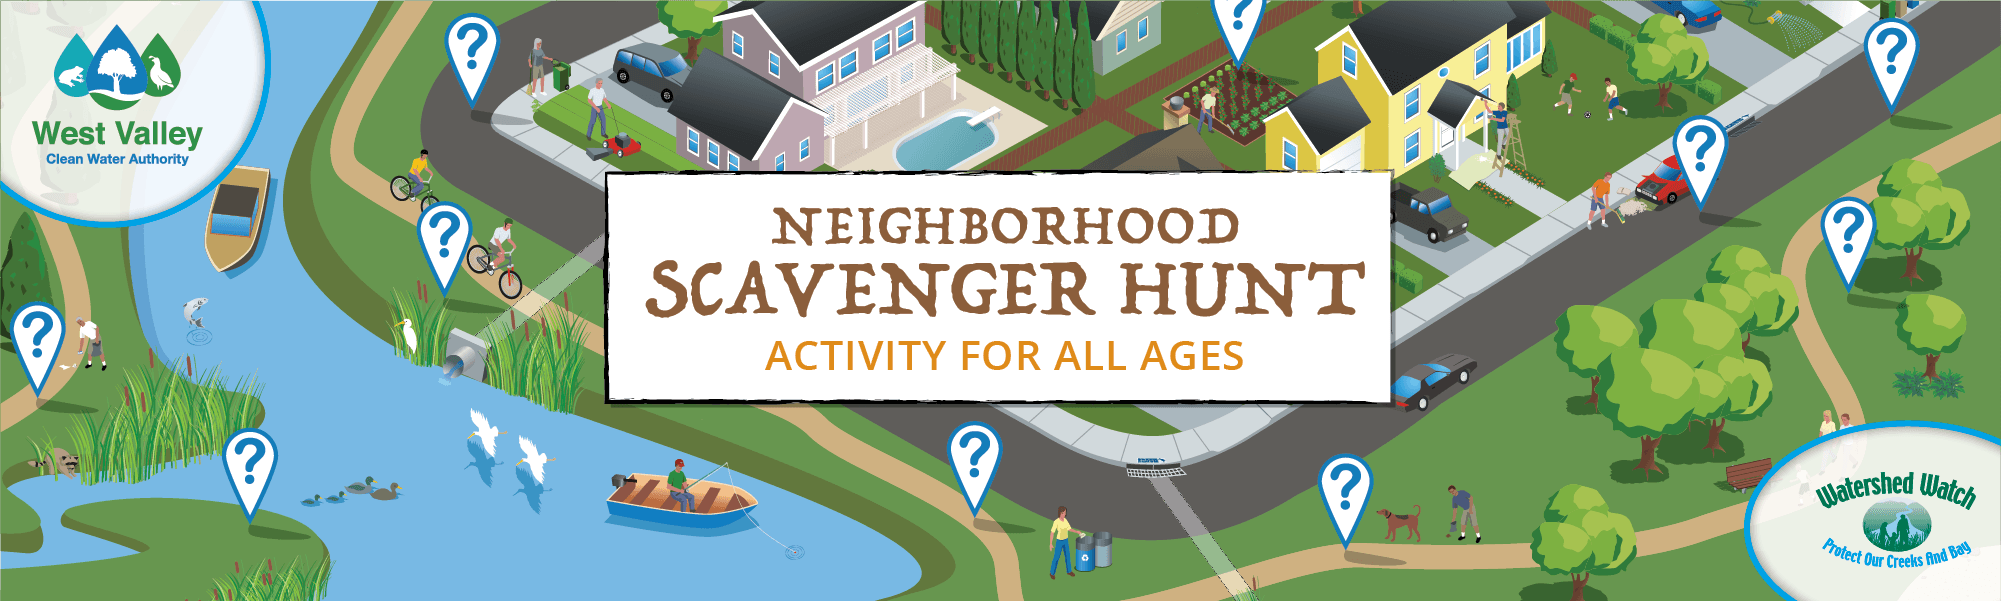 Scavenger Hunt Website Banner